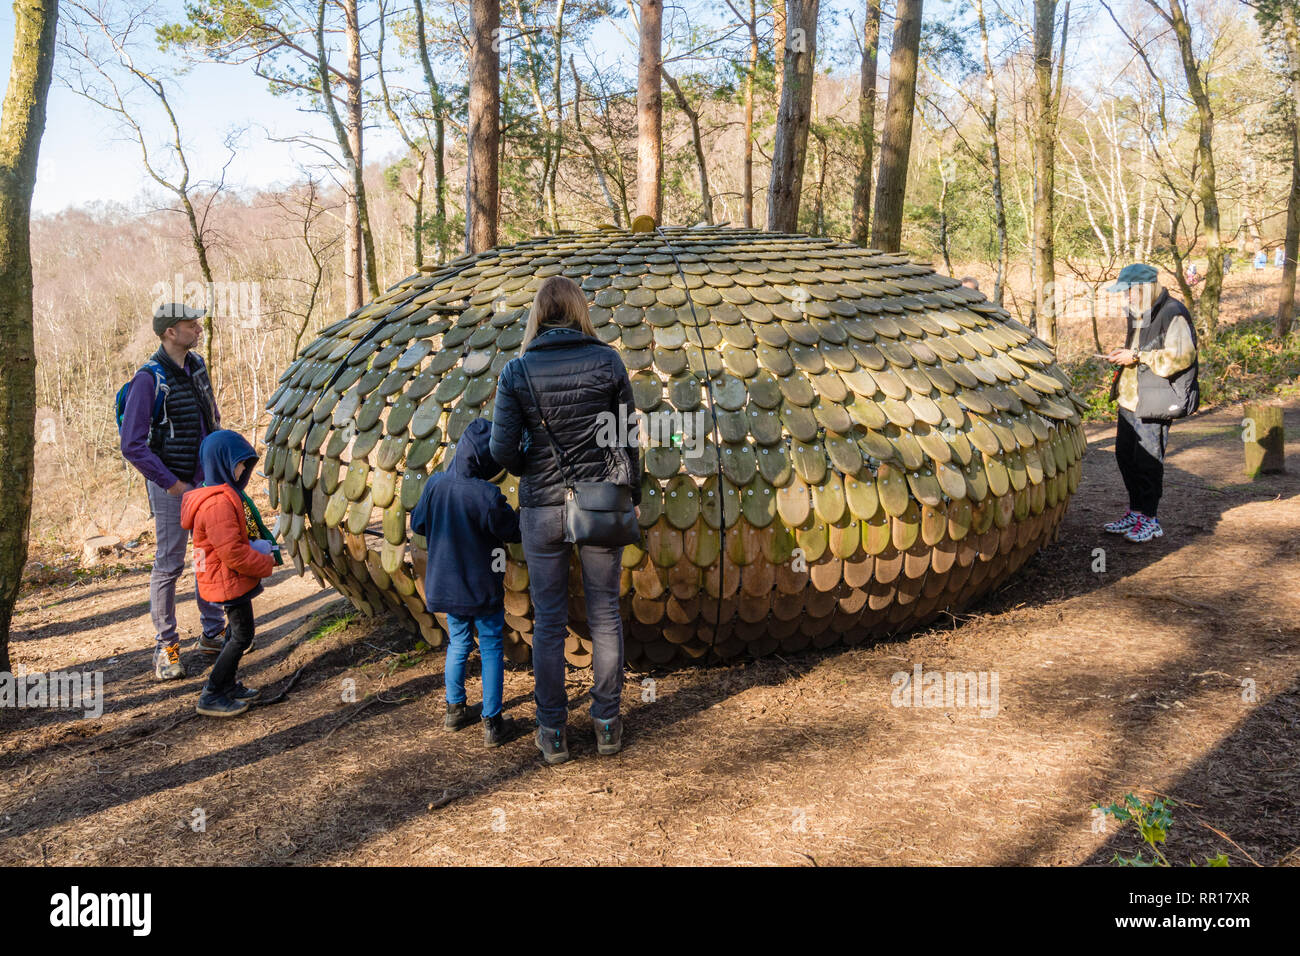 Art installation called Perspectives by Giles Miller in The Hurtwood in the Surrey Hills Area of Outstanding Natural Beauty UK with visitors. - Stock Image